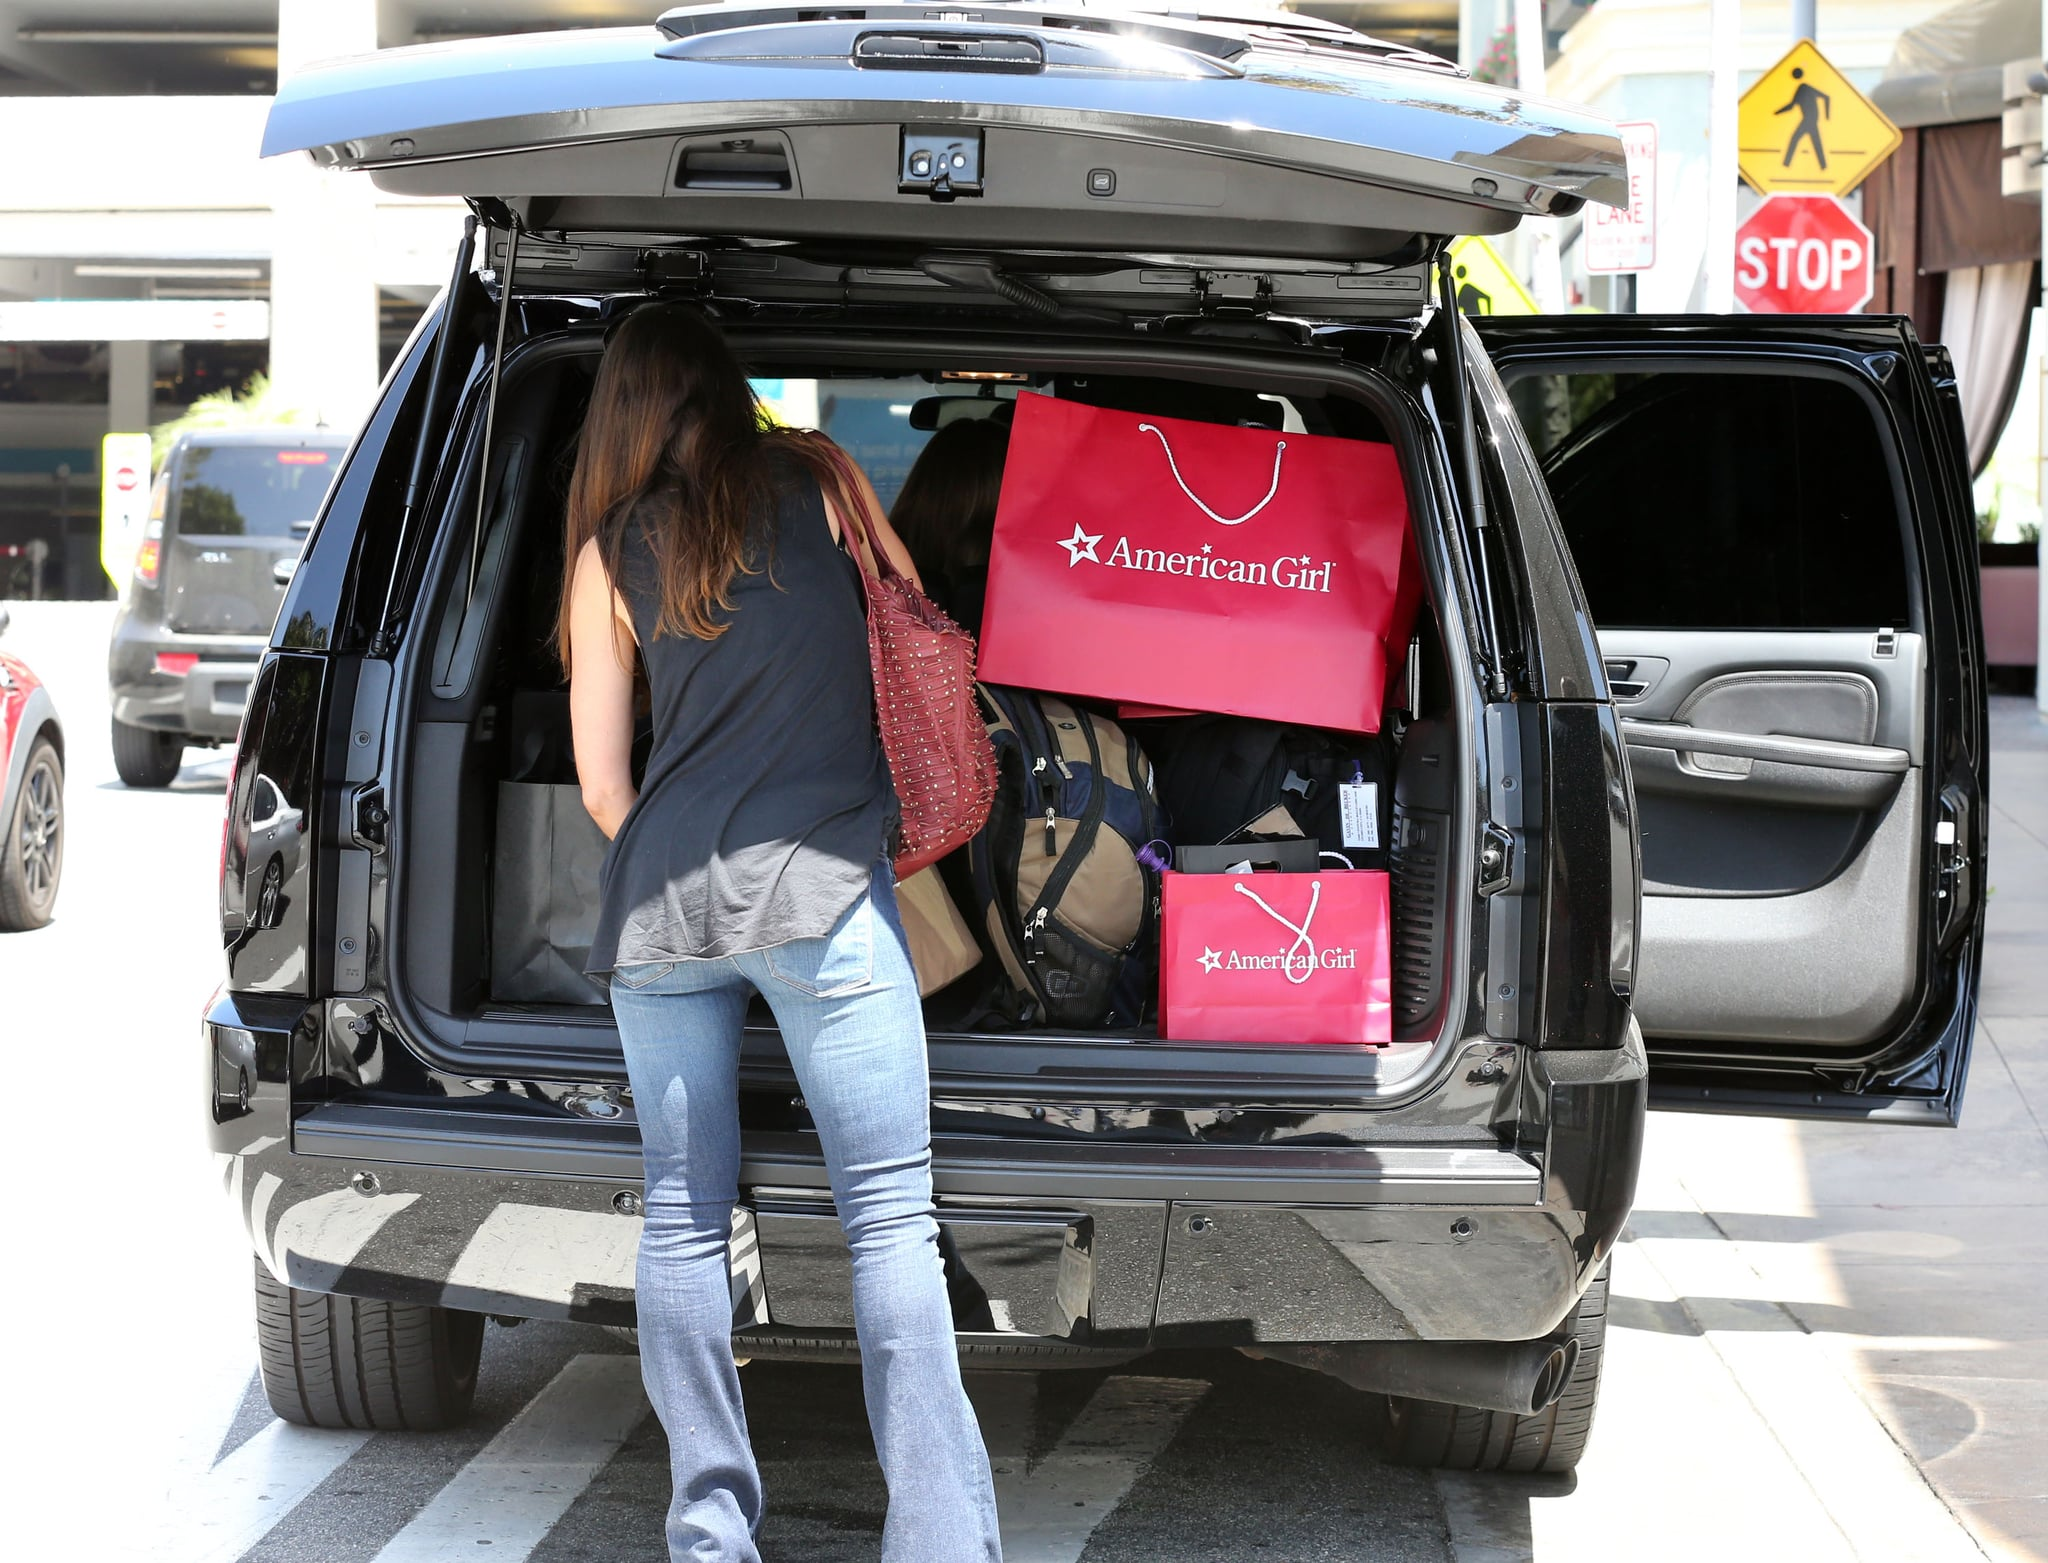 Victoria Beckham packed her car in LA after a Memorial Day shopping trip.